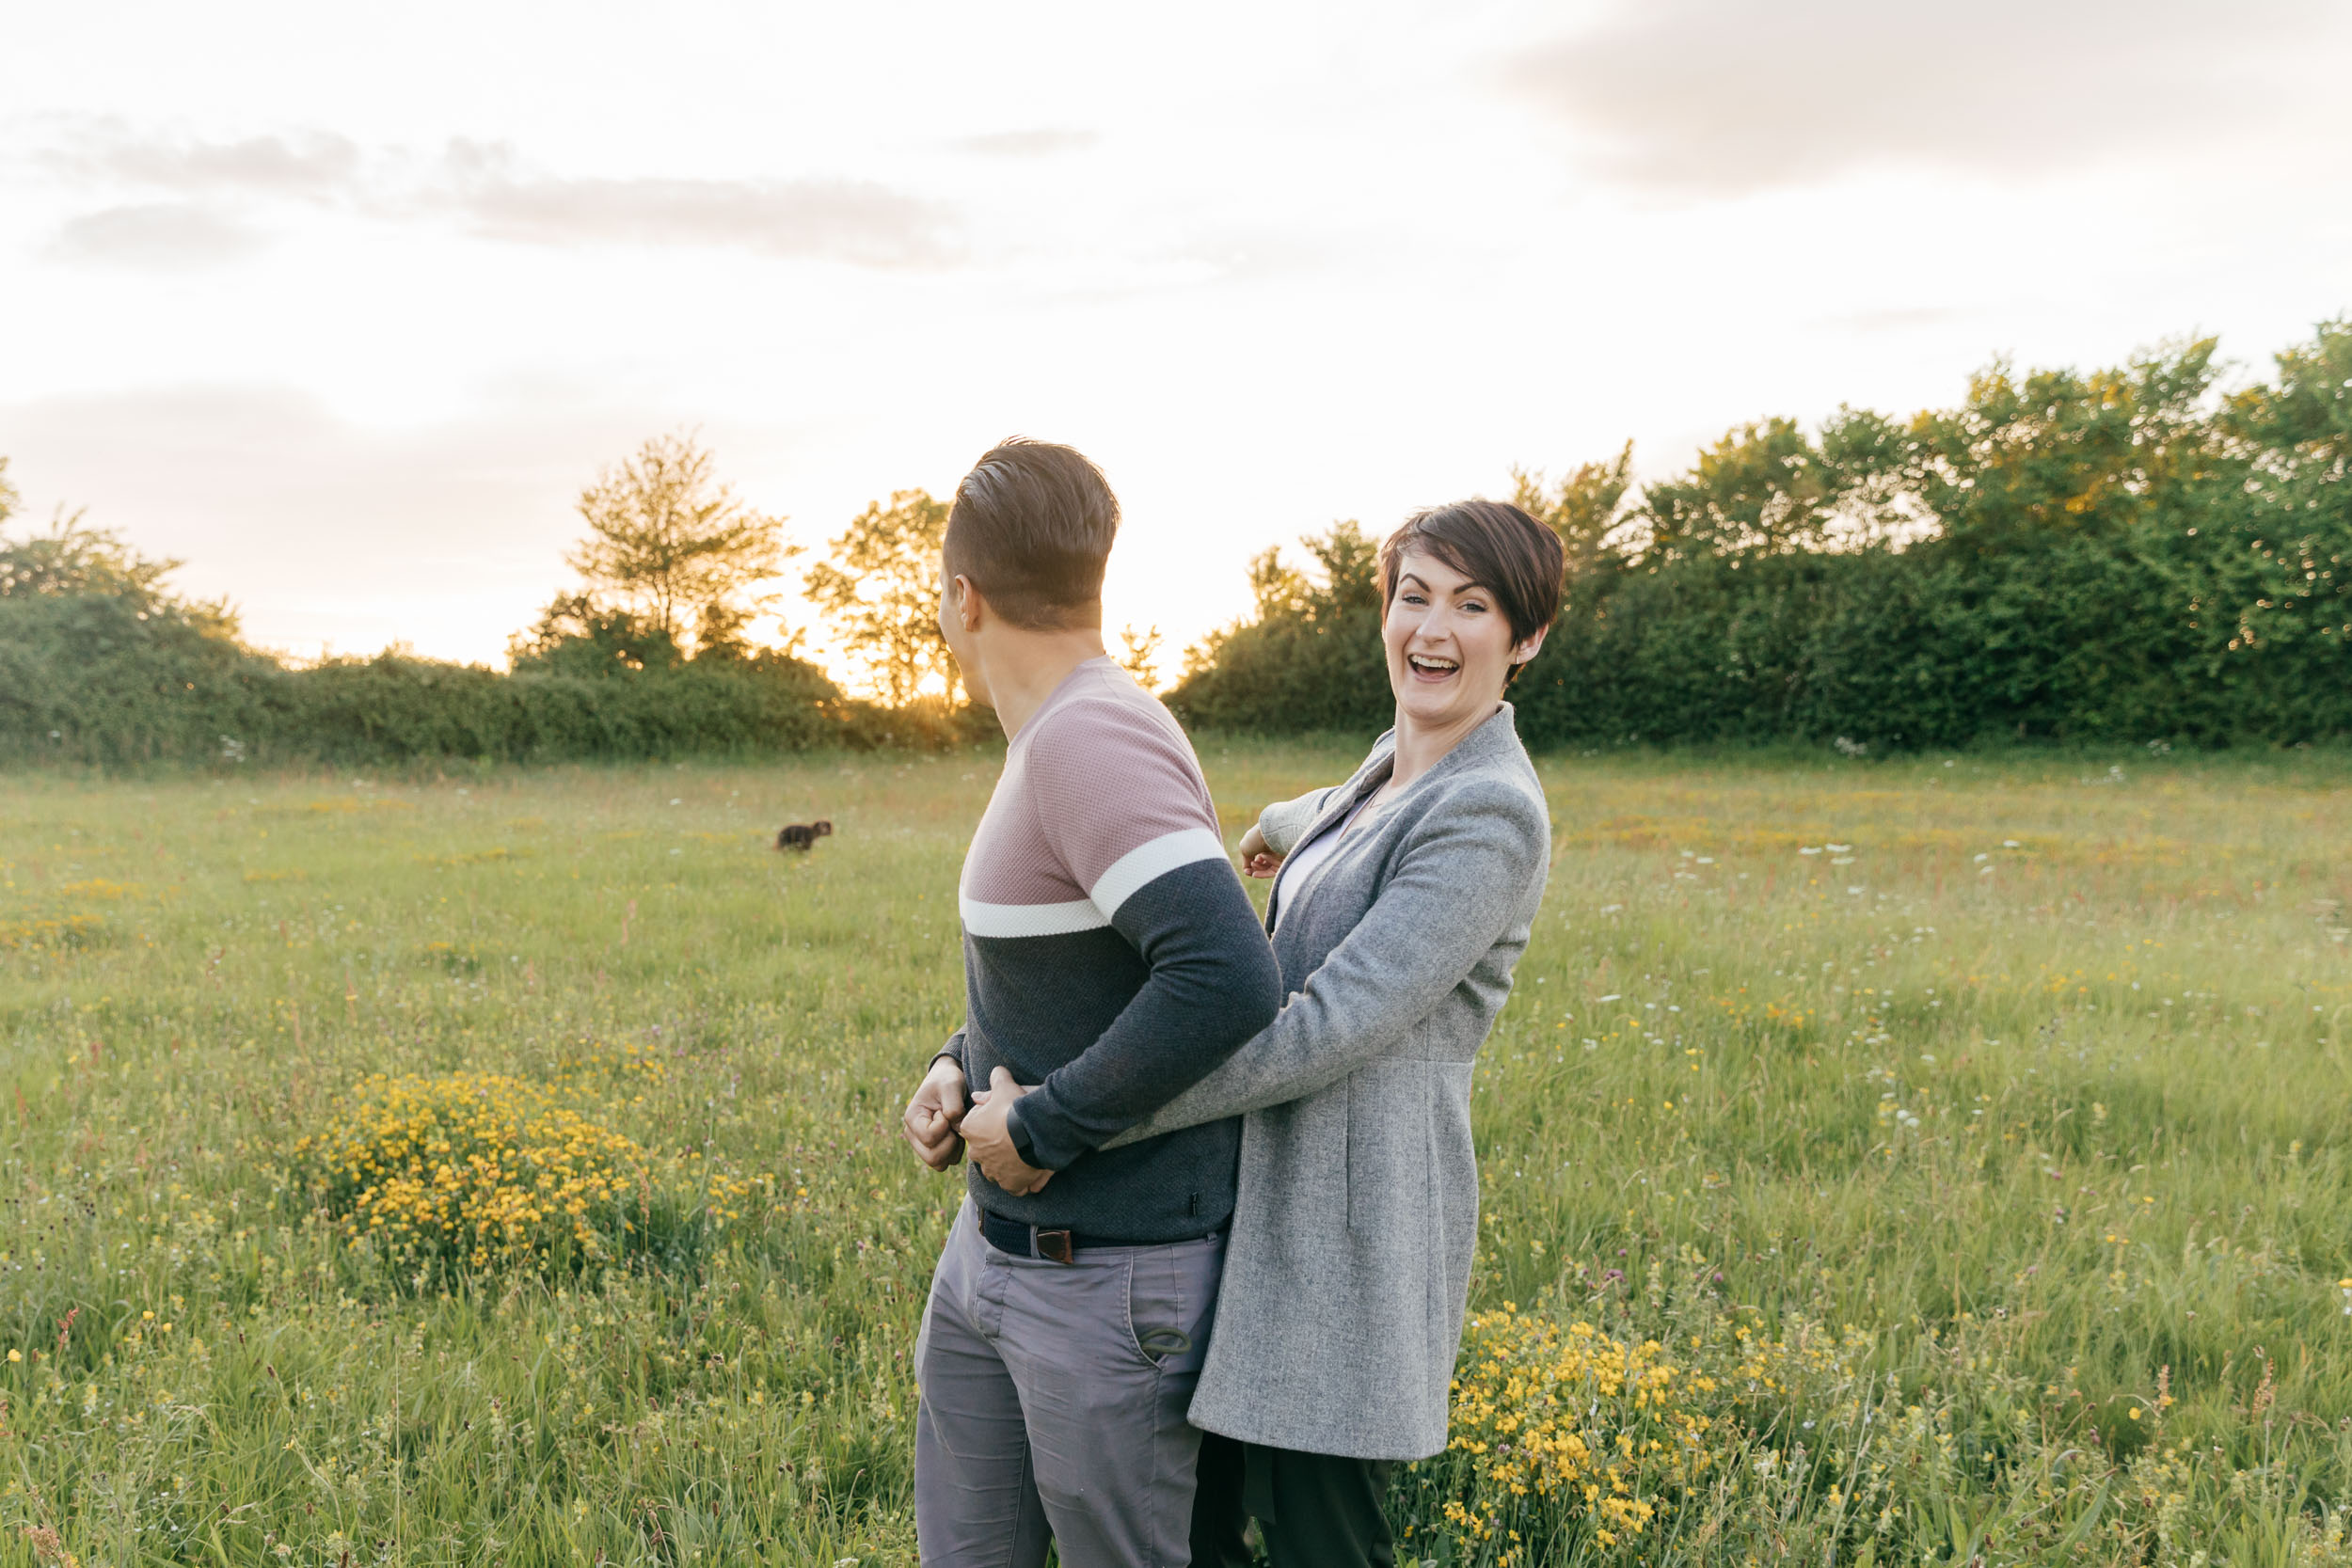 sunset engagement photographer cotswolds